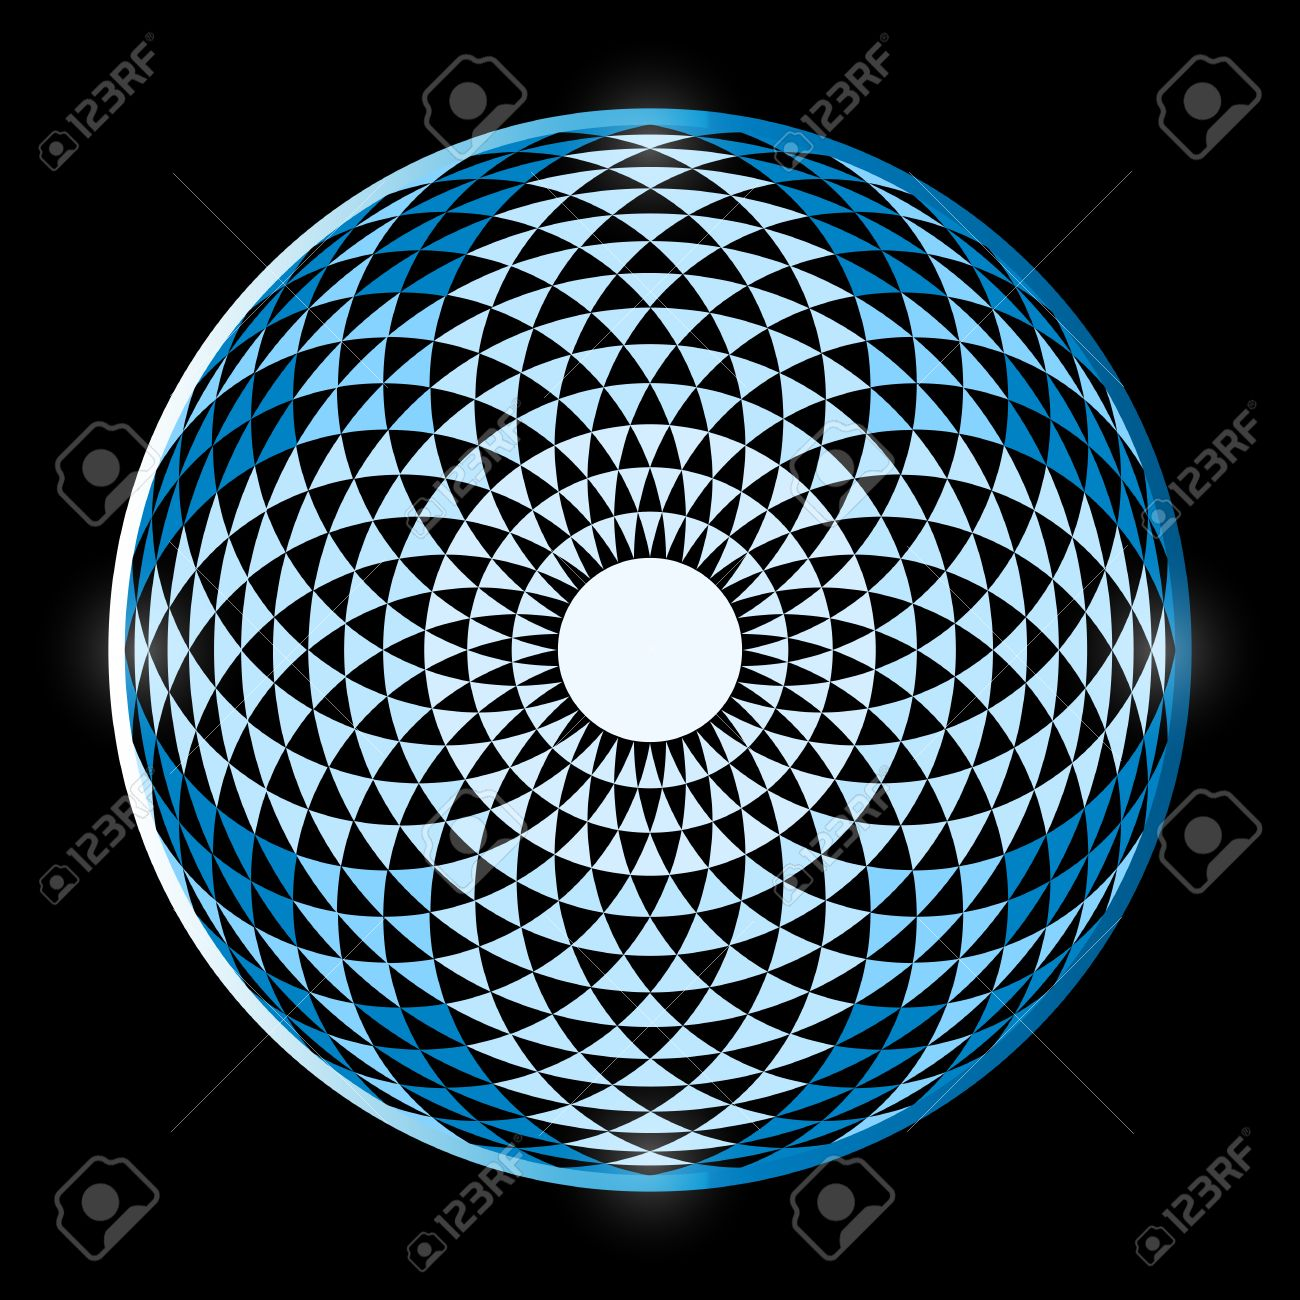 Torus Yantra, Hypnotic Eye sacred geometry basic element  Torus